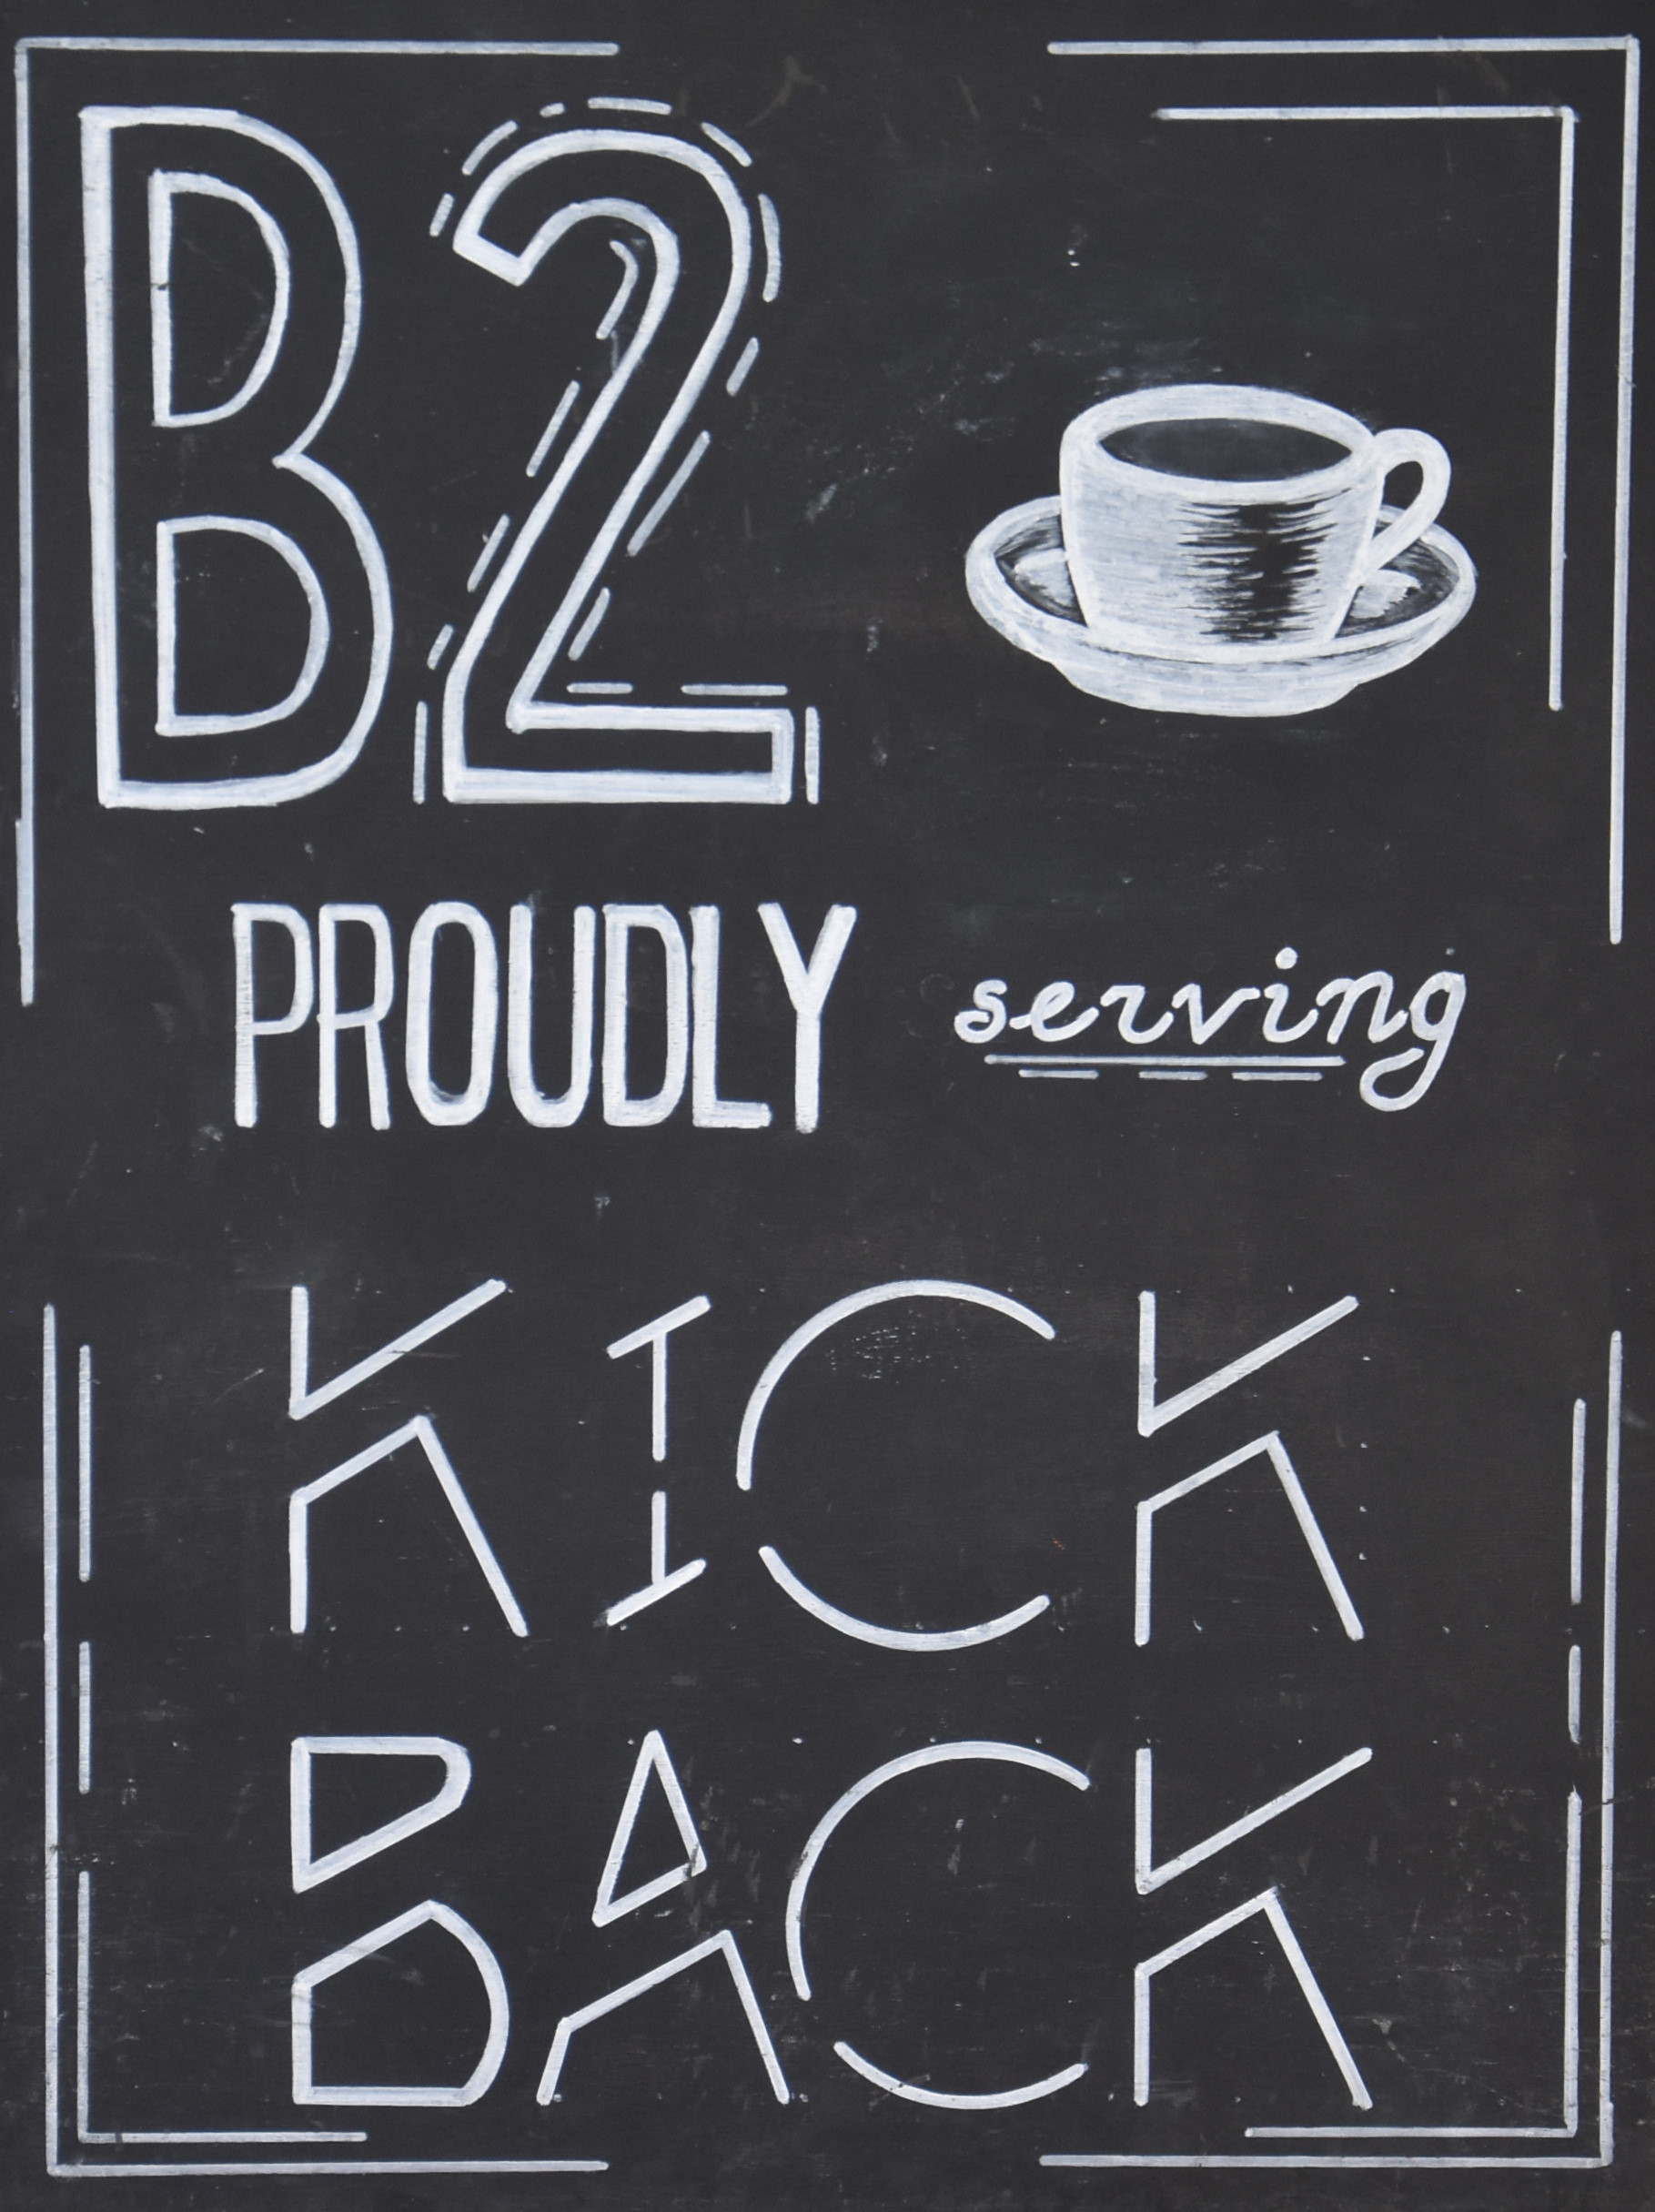 """B2 PROUDLY serving KICK BACK"", taken from the board outside B2 in San Pedro Square Market."